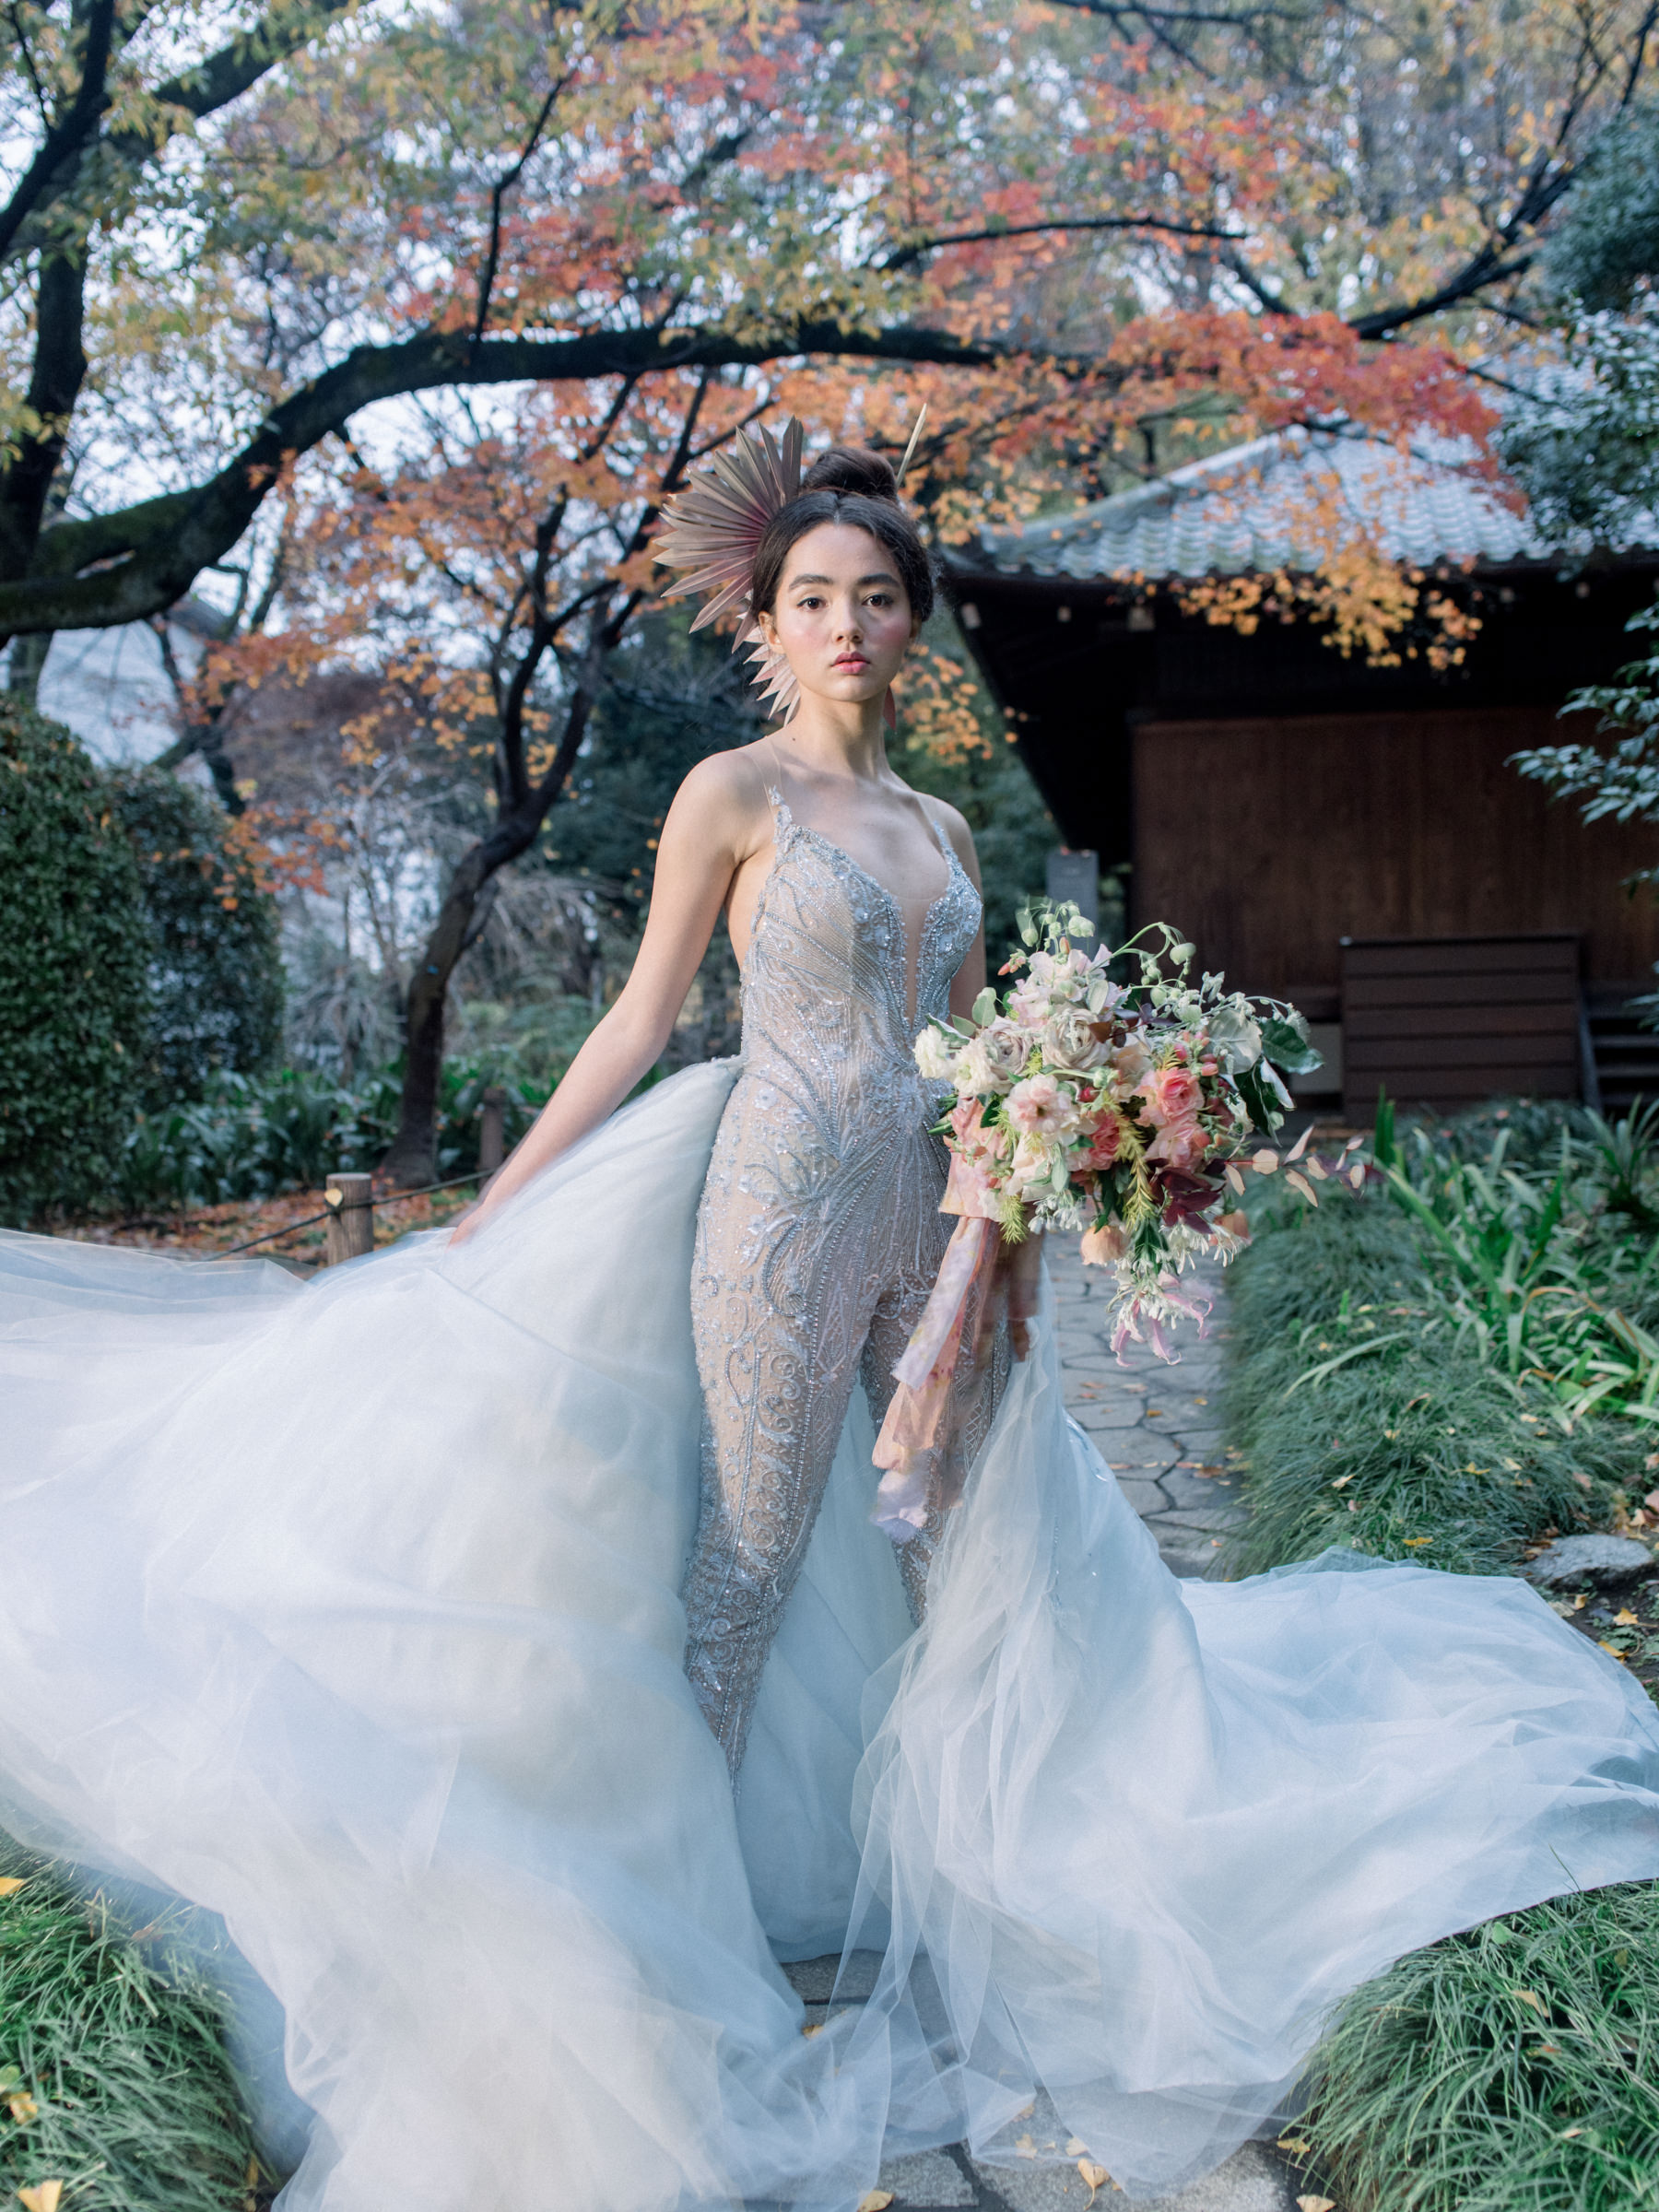 Bride in stunning metallic lace body suit and tulle train  - photo by Corbin Gurkin